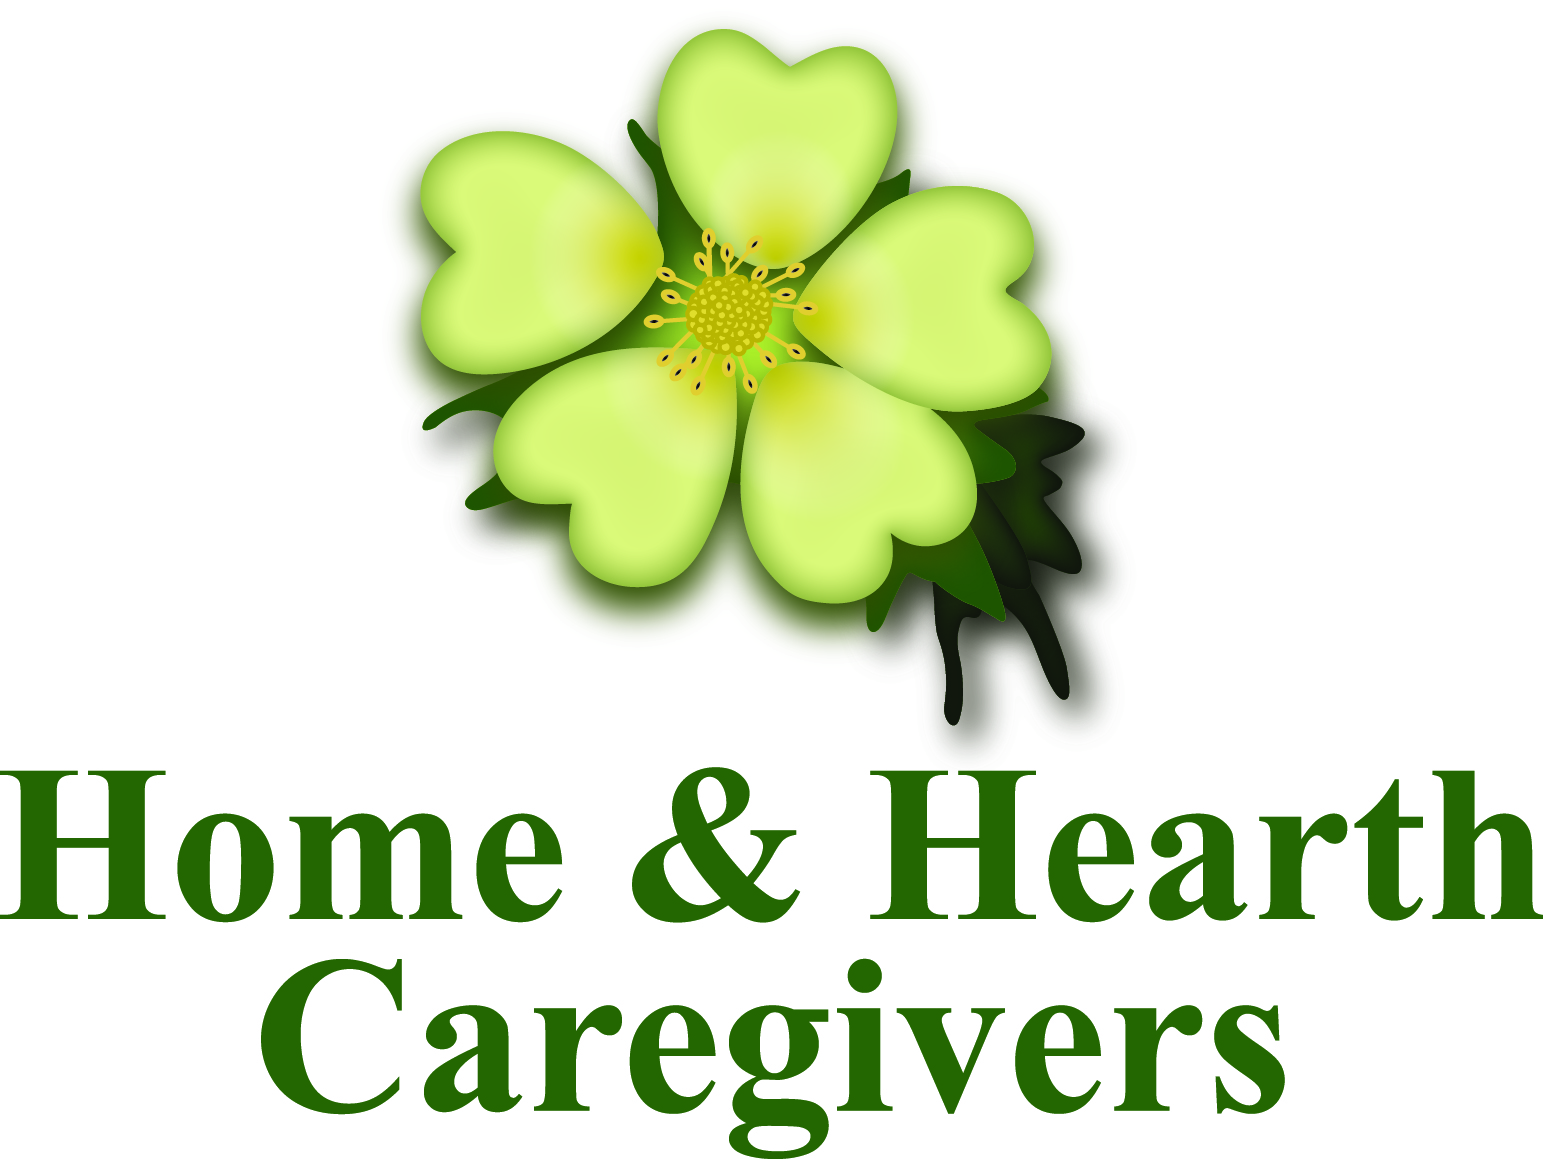 Home & Hearth Caregivers Division of Parker Cromwell Healthcare logo